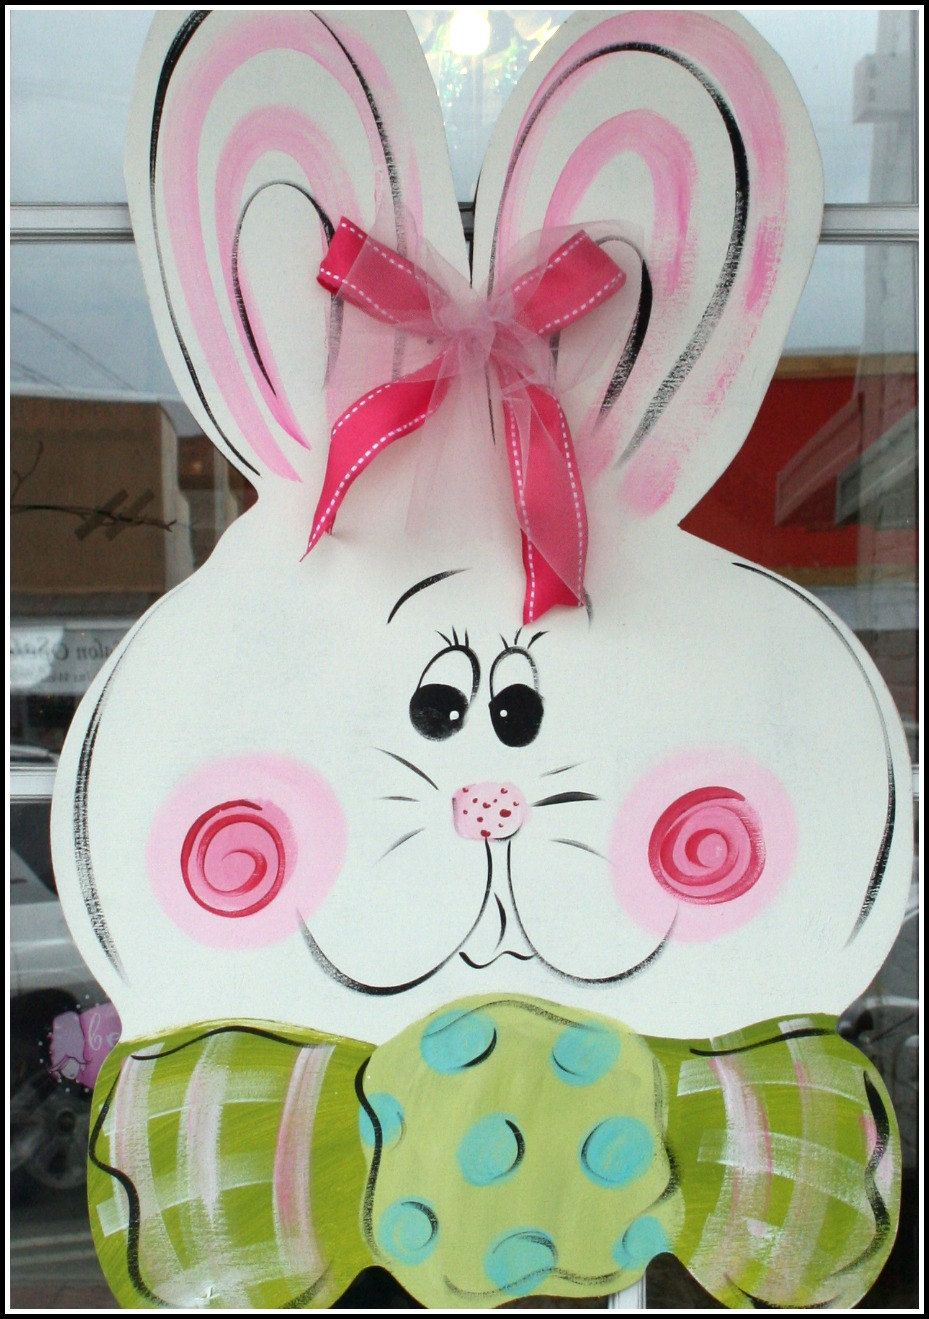 Decorative Door Hangers Large Wooden Easter Bunny Door Hanger Decor Art By Ladeedahart